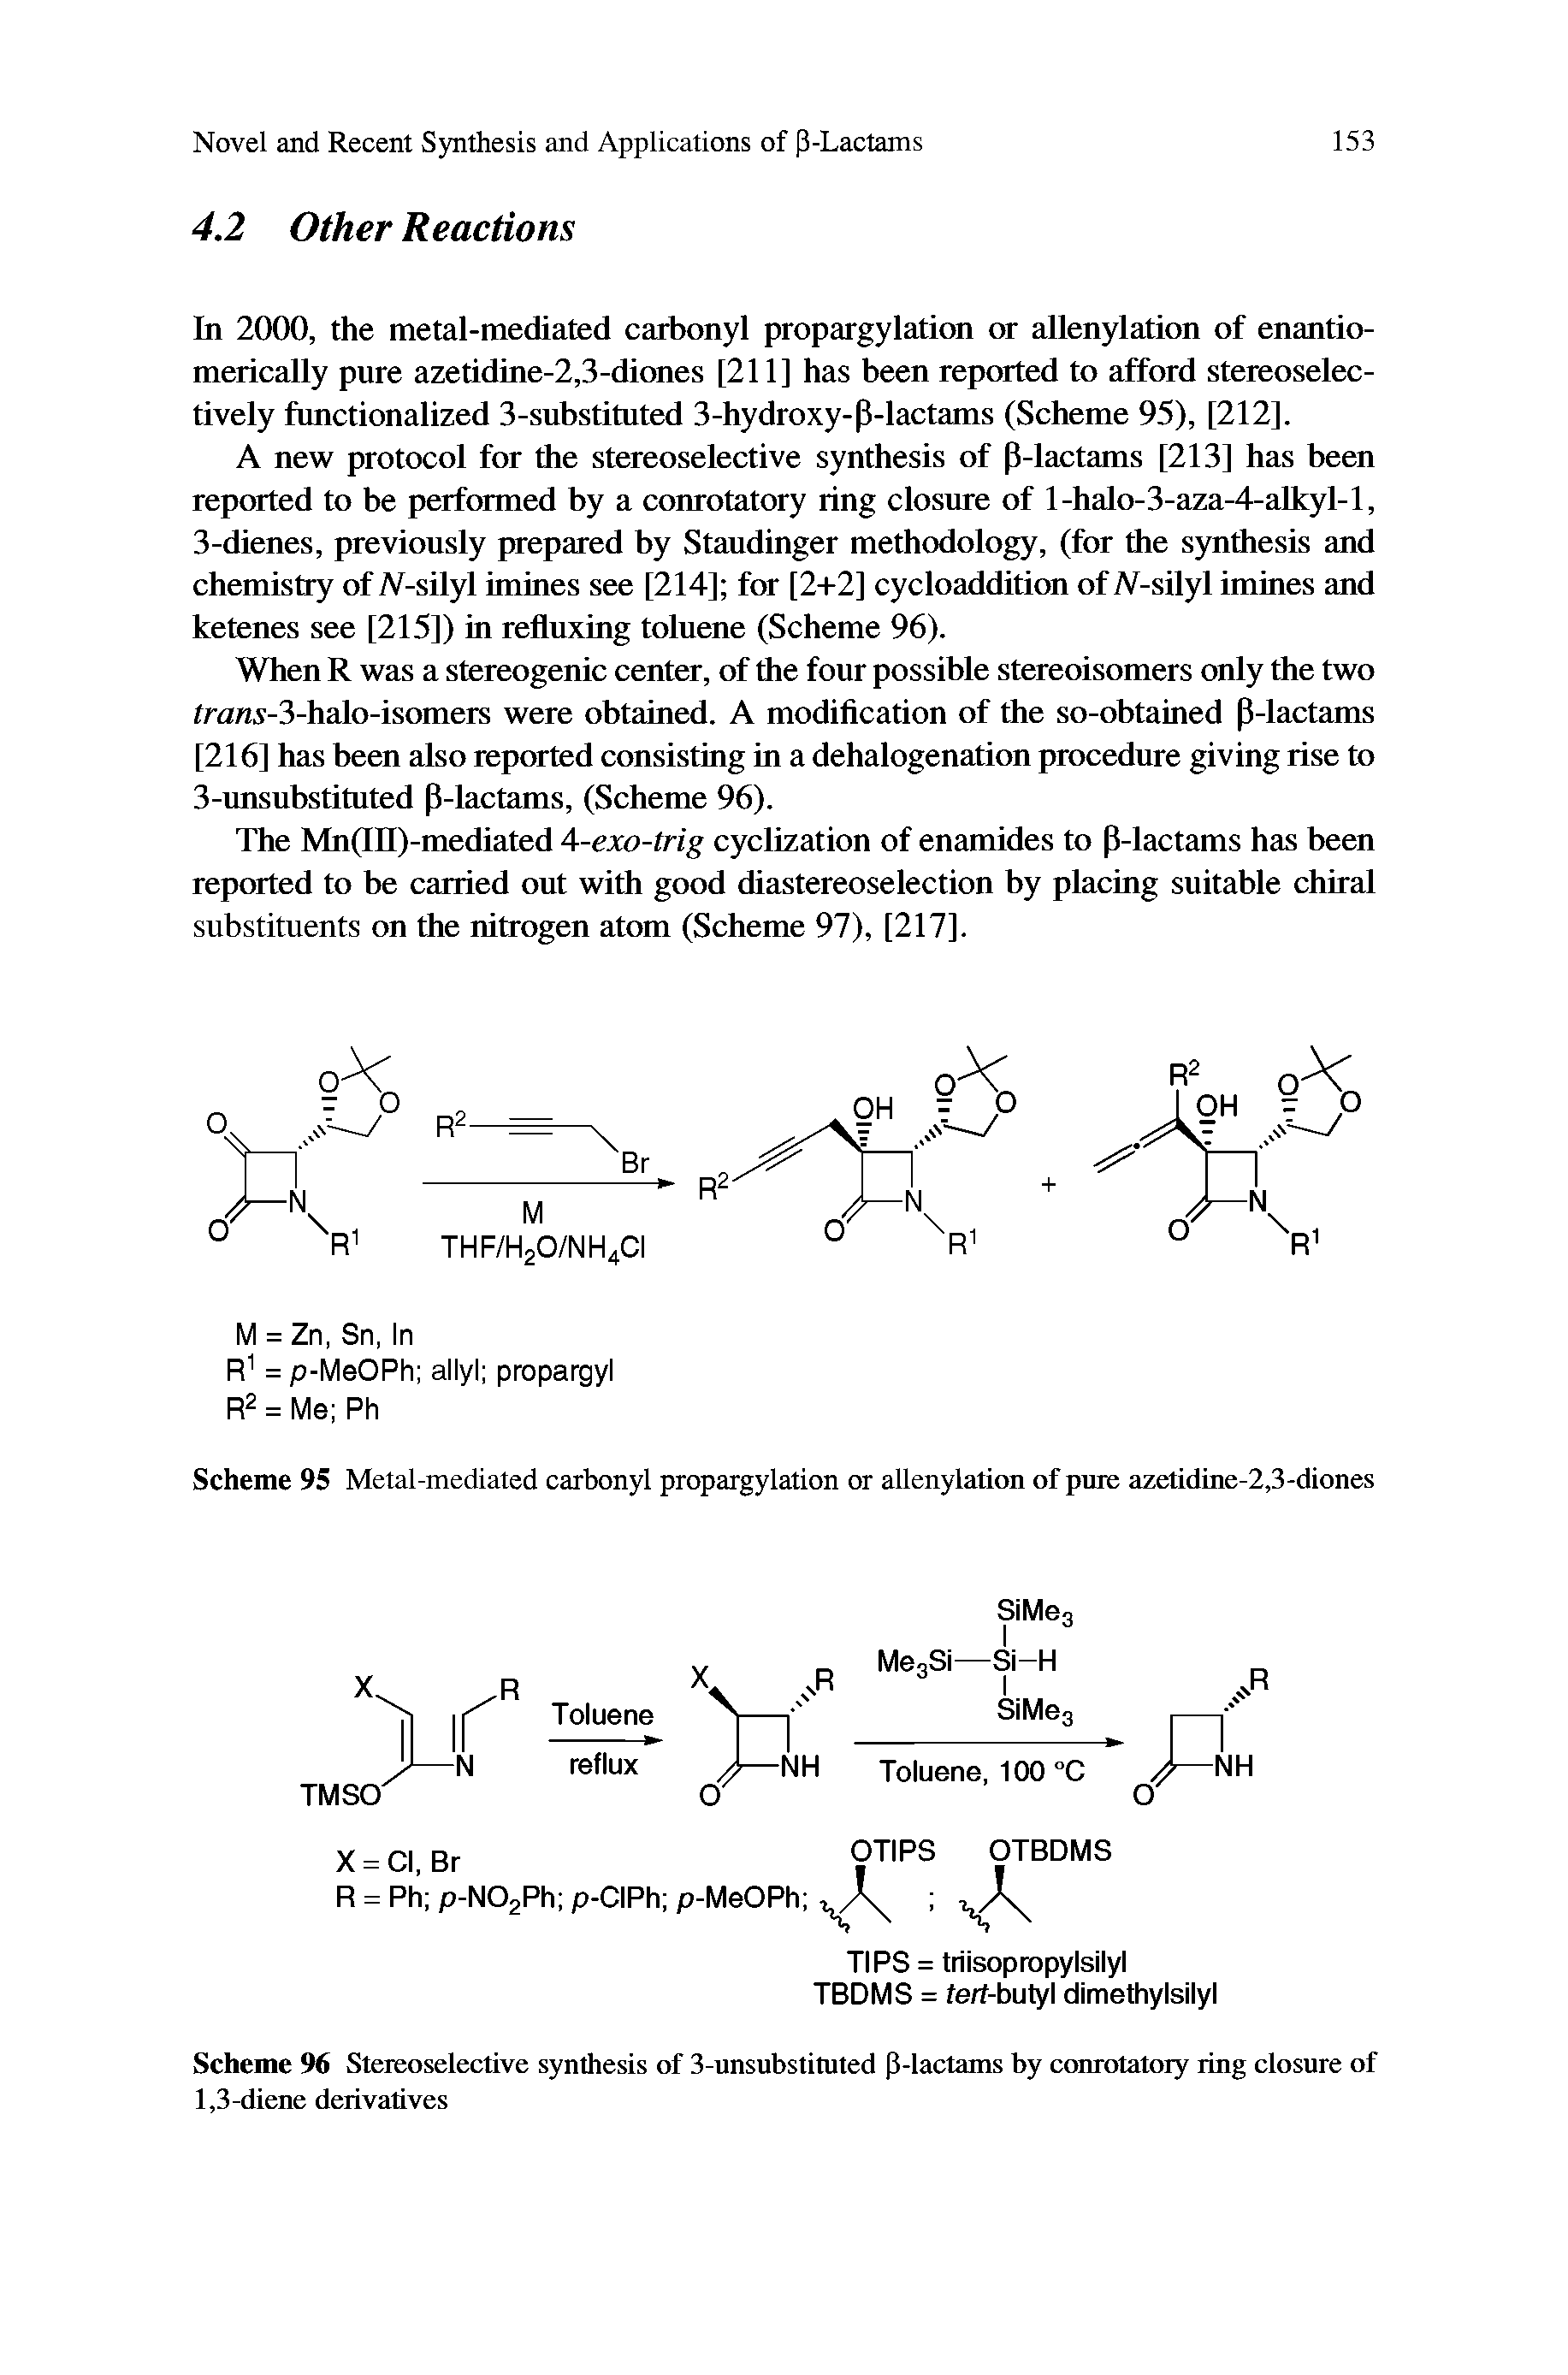 "Scheme 96 <a href=""/info/stereoselective_synthesis"">Stereoselective synthesis</a> of 3-unsubstituted P-lactams by <a href=""/info/ring_closure_conrotatory"">conrotatory ring closure</a> of 1,3-diene derivatives"